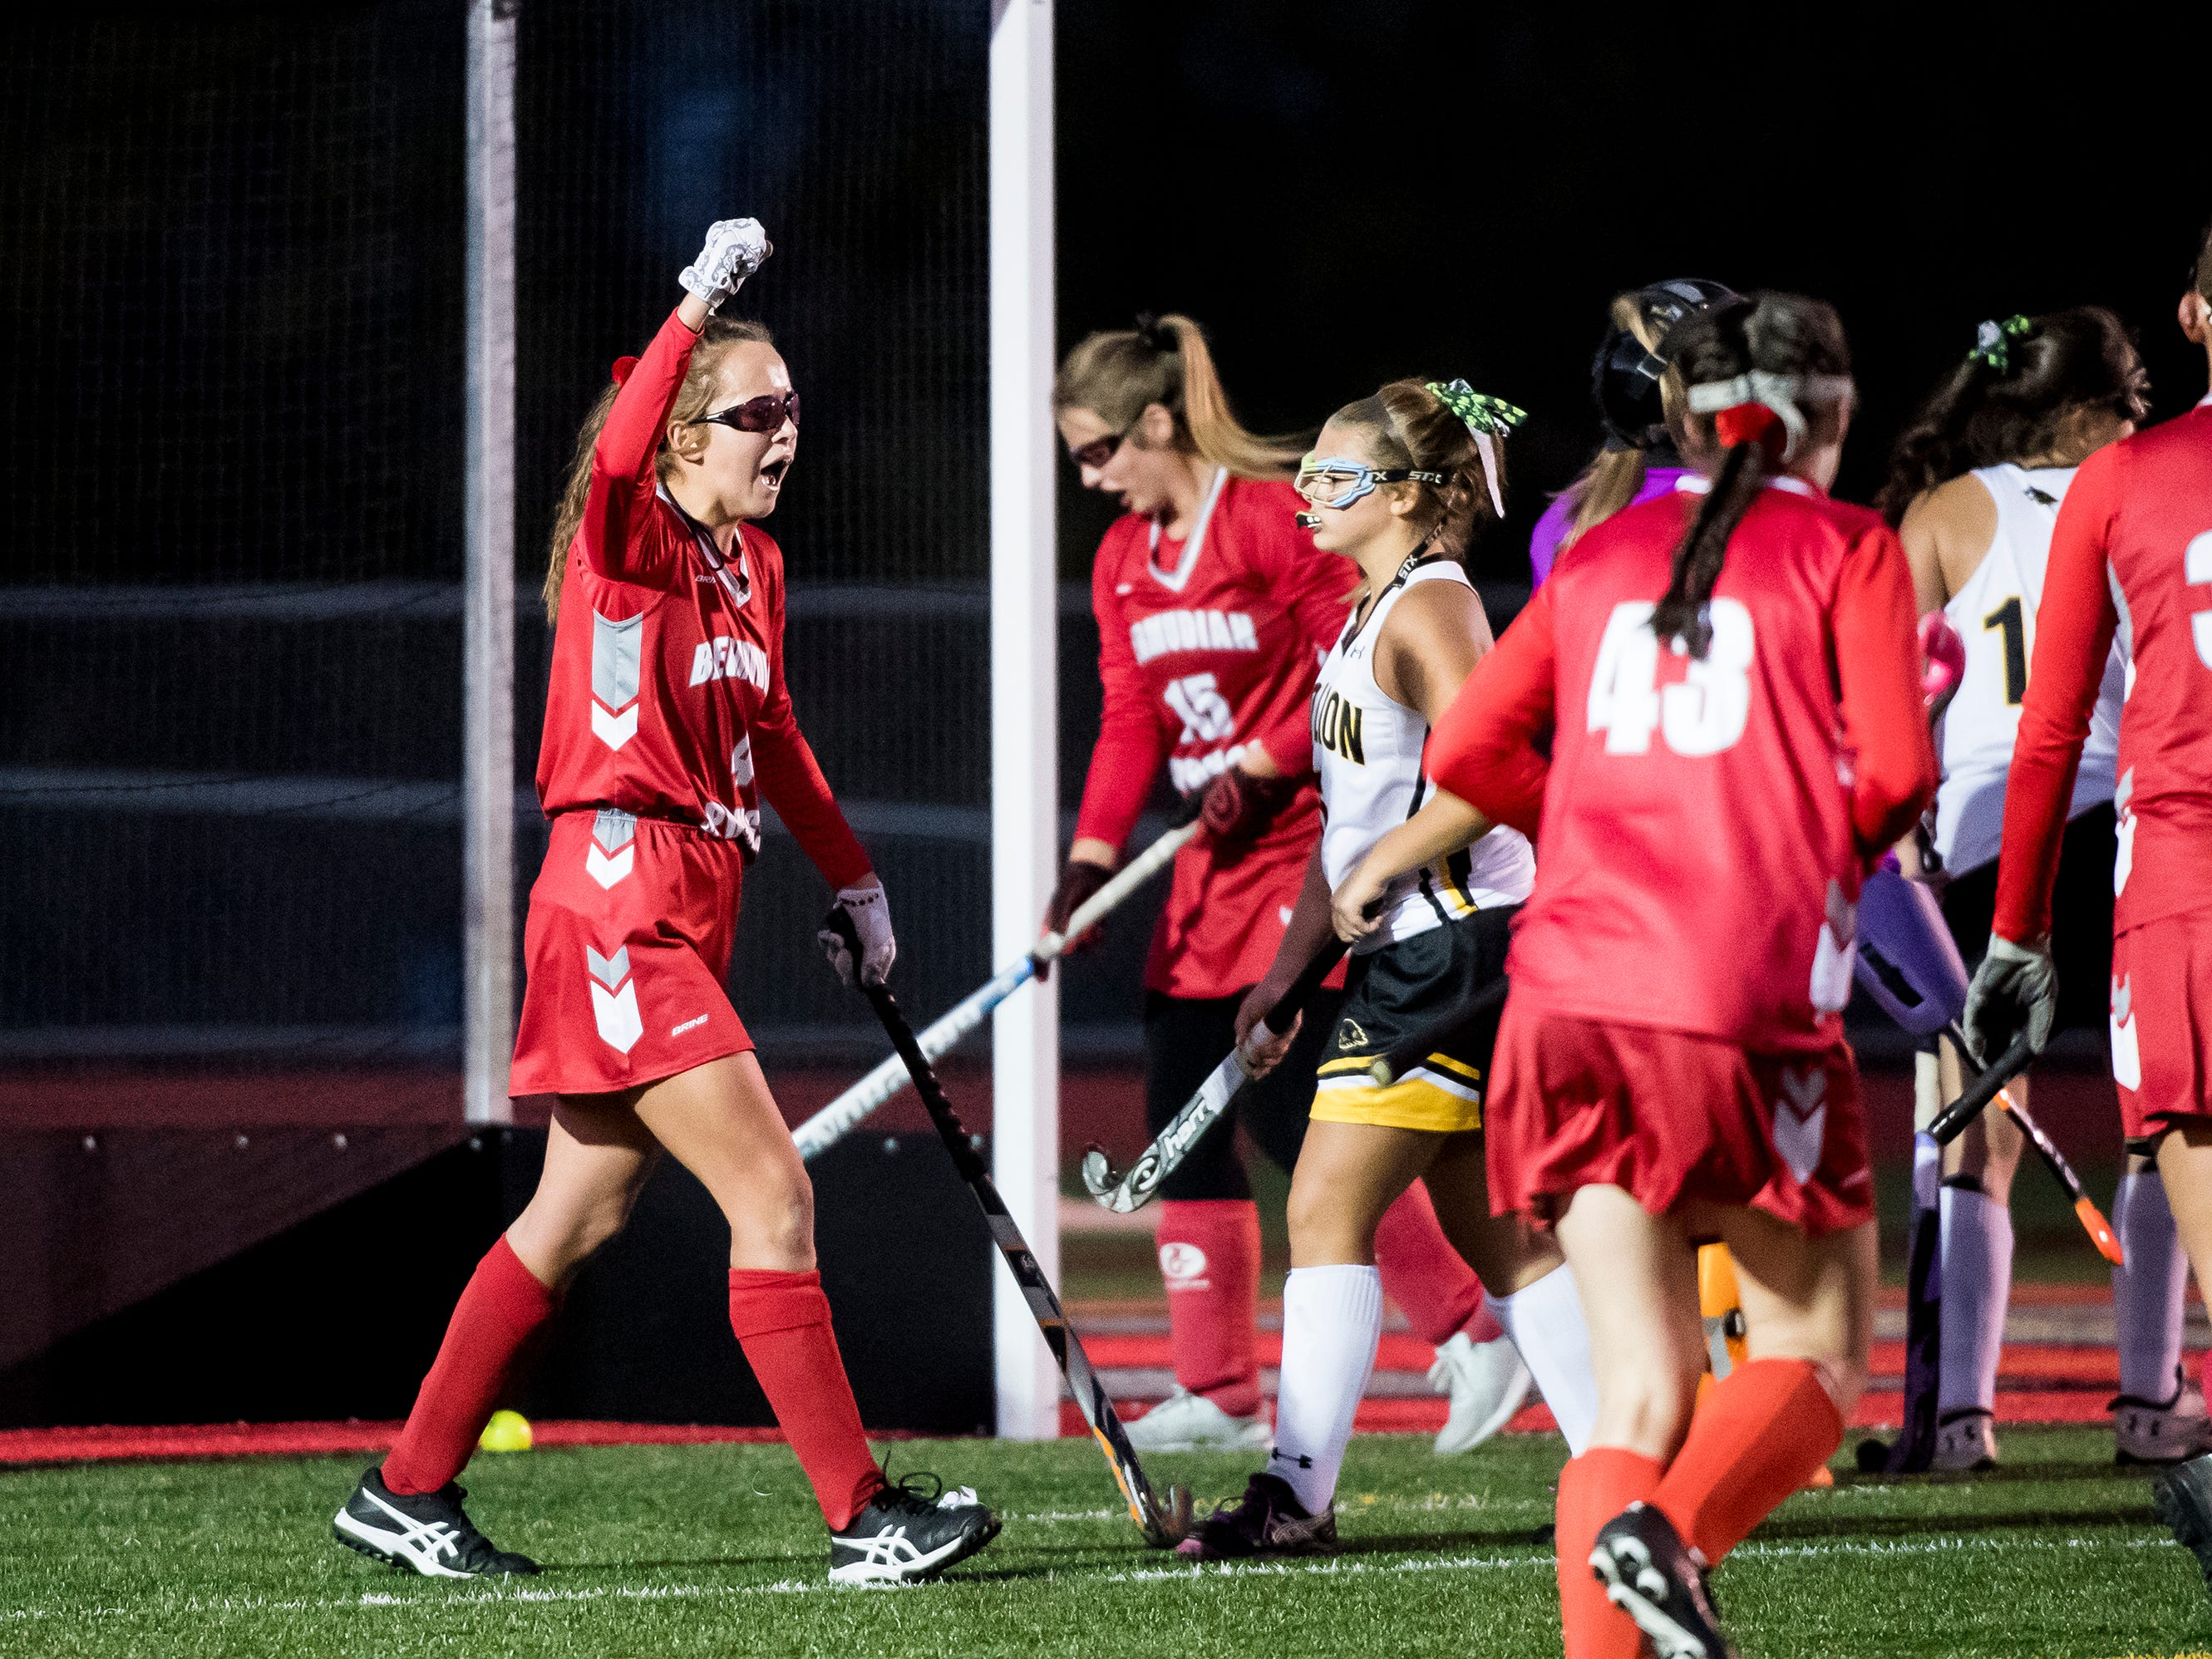 Bermudian Springs' Skyler West celebrates after a goal was scored by teammate Hailey Lamo (15) during a YAIAA tournament semifinal game against Red Lion on Thursday, October 18, 2018. The Eagles won 2-0 and will play Central York in the championship game Saturday.